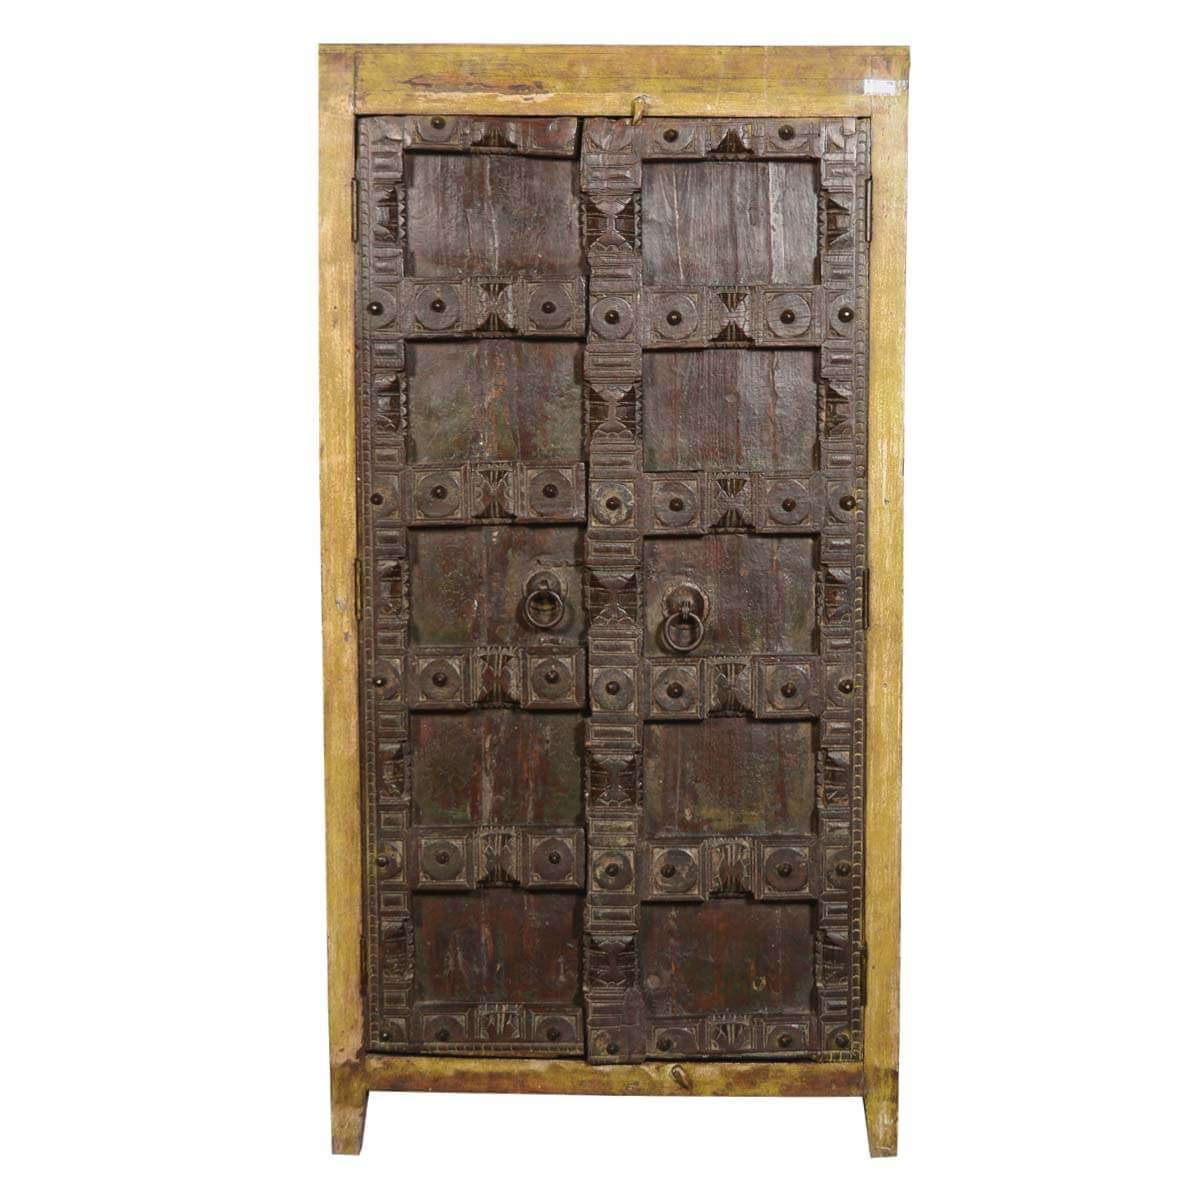 Antique Storage Cabinets 6037 1 Jpg